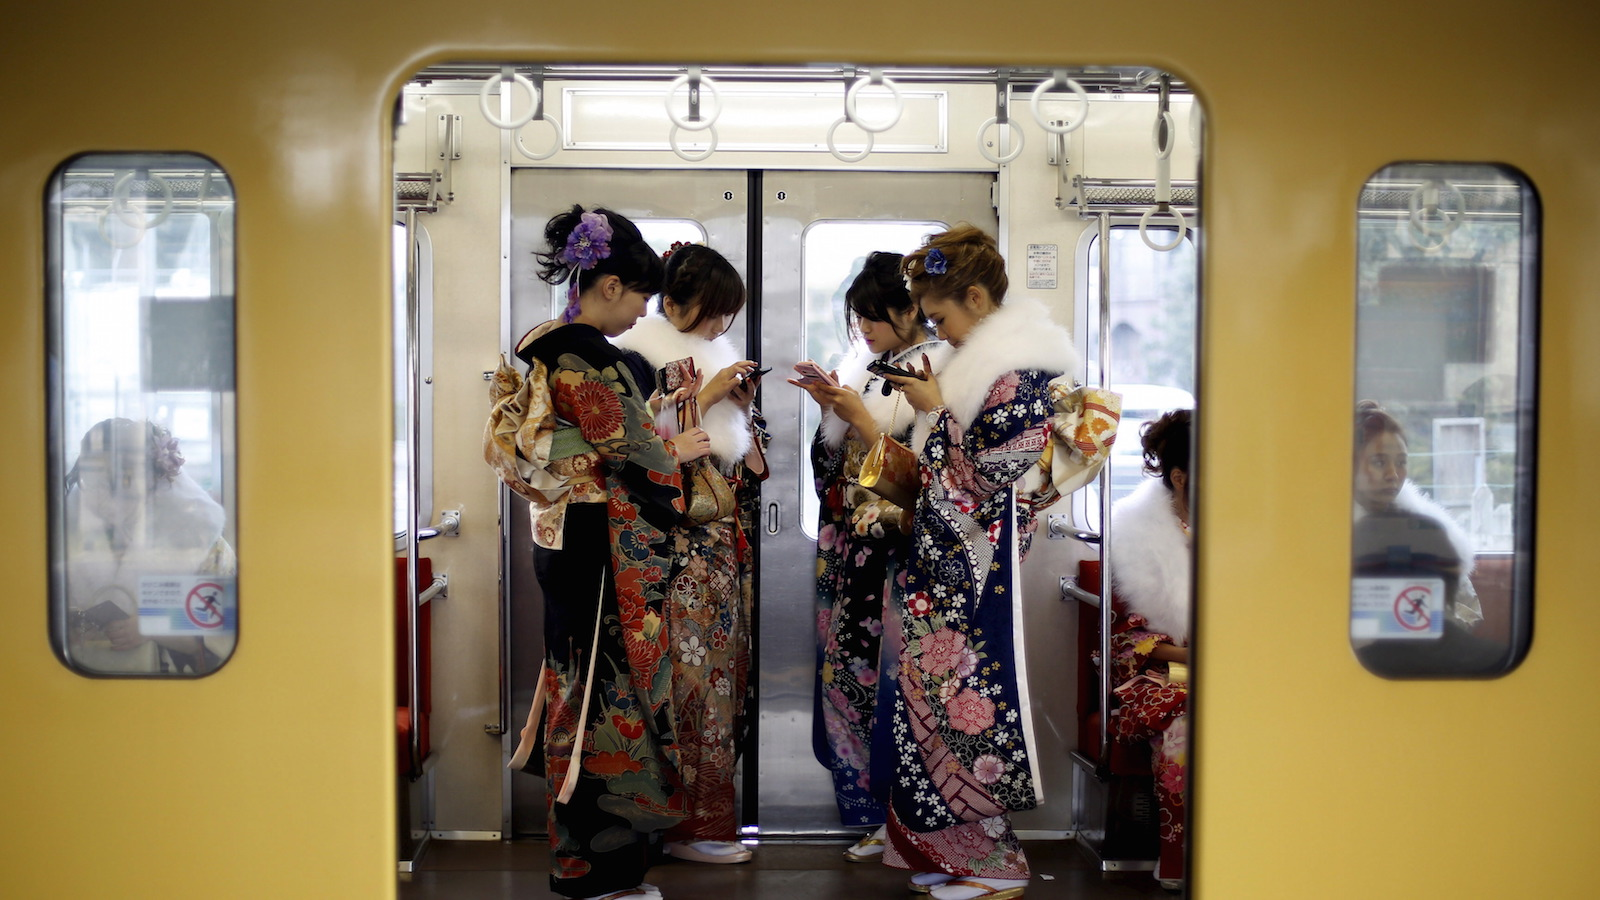 Japanese women wearing kimonos look at their mobile phones after their Coming of Age Day celebration ceremony at an amusement park in Tokyo January 11, 2016. According to a government announcement, more than 1.2 million men and women who were born in 1995 marked the coming of age this year, a decrease of approximately 50,000 from last year.